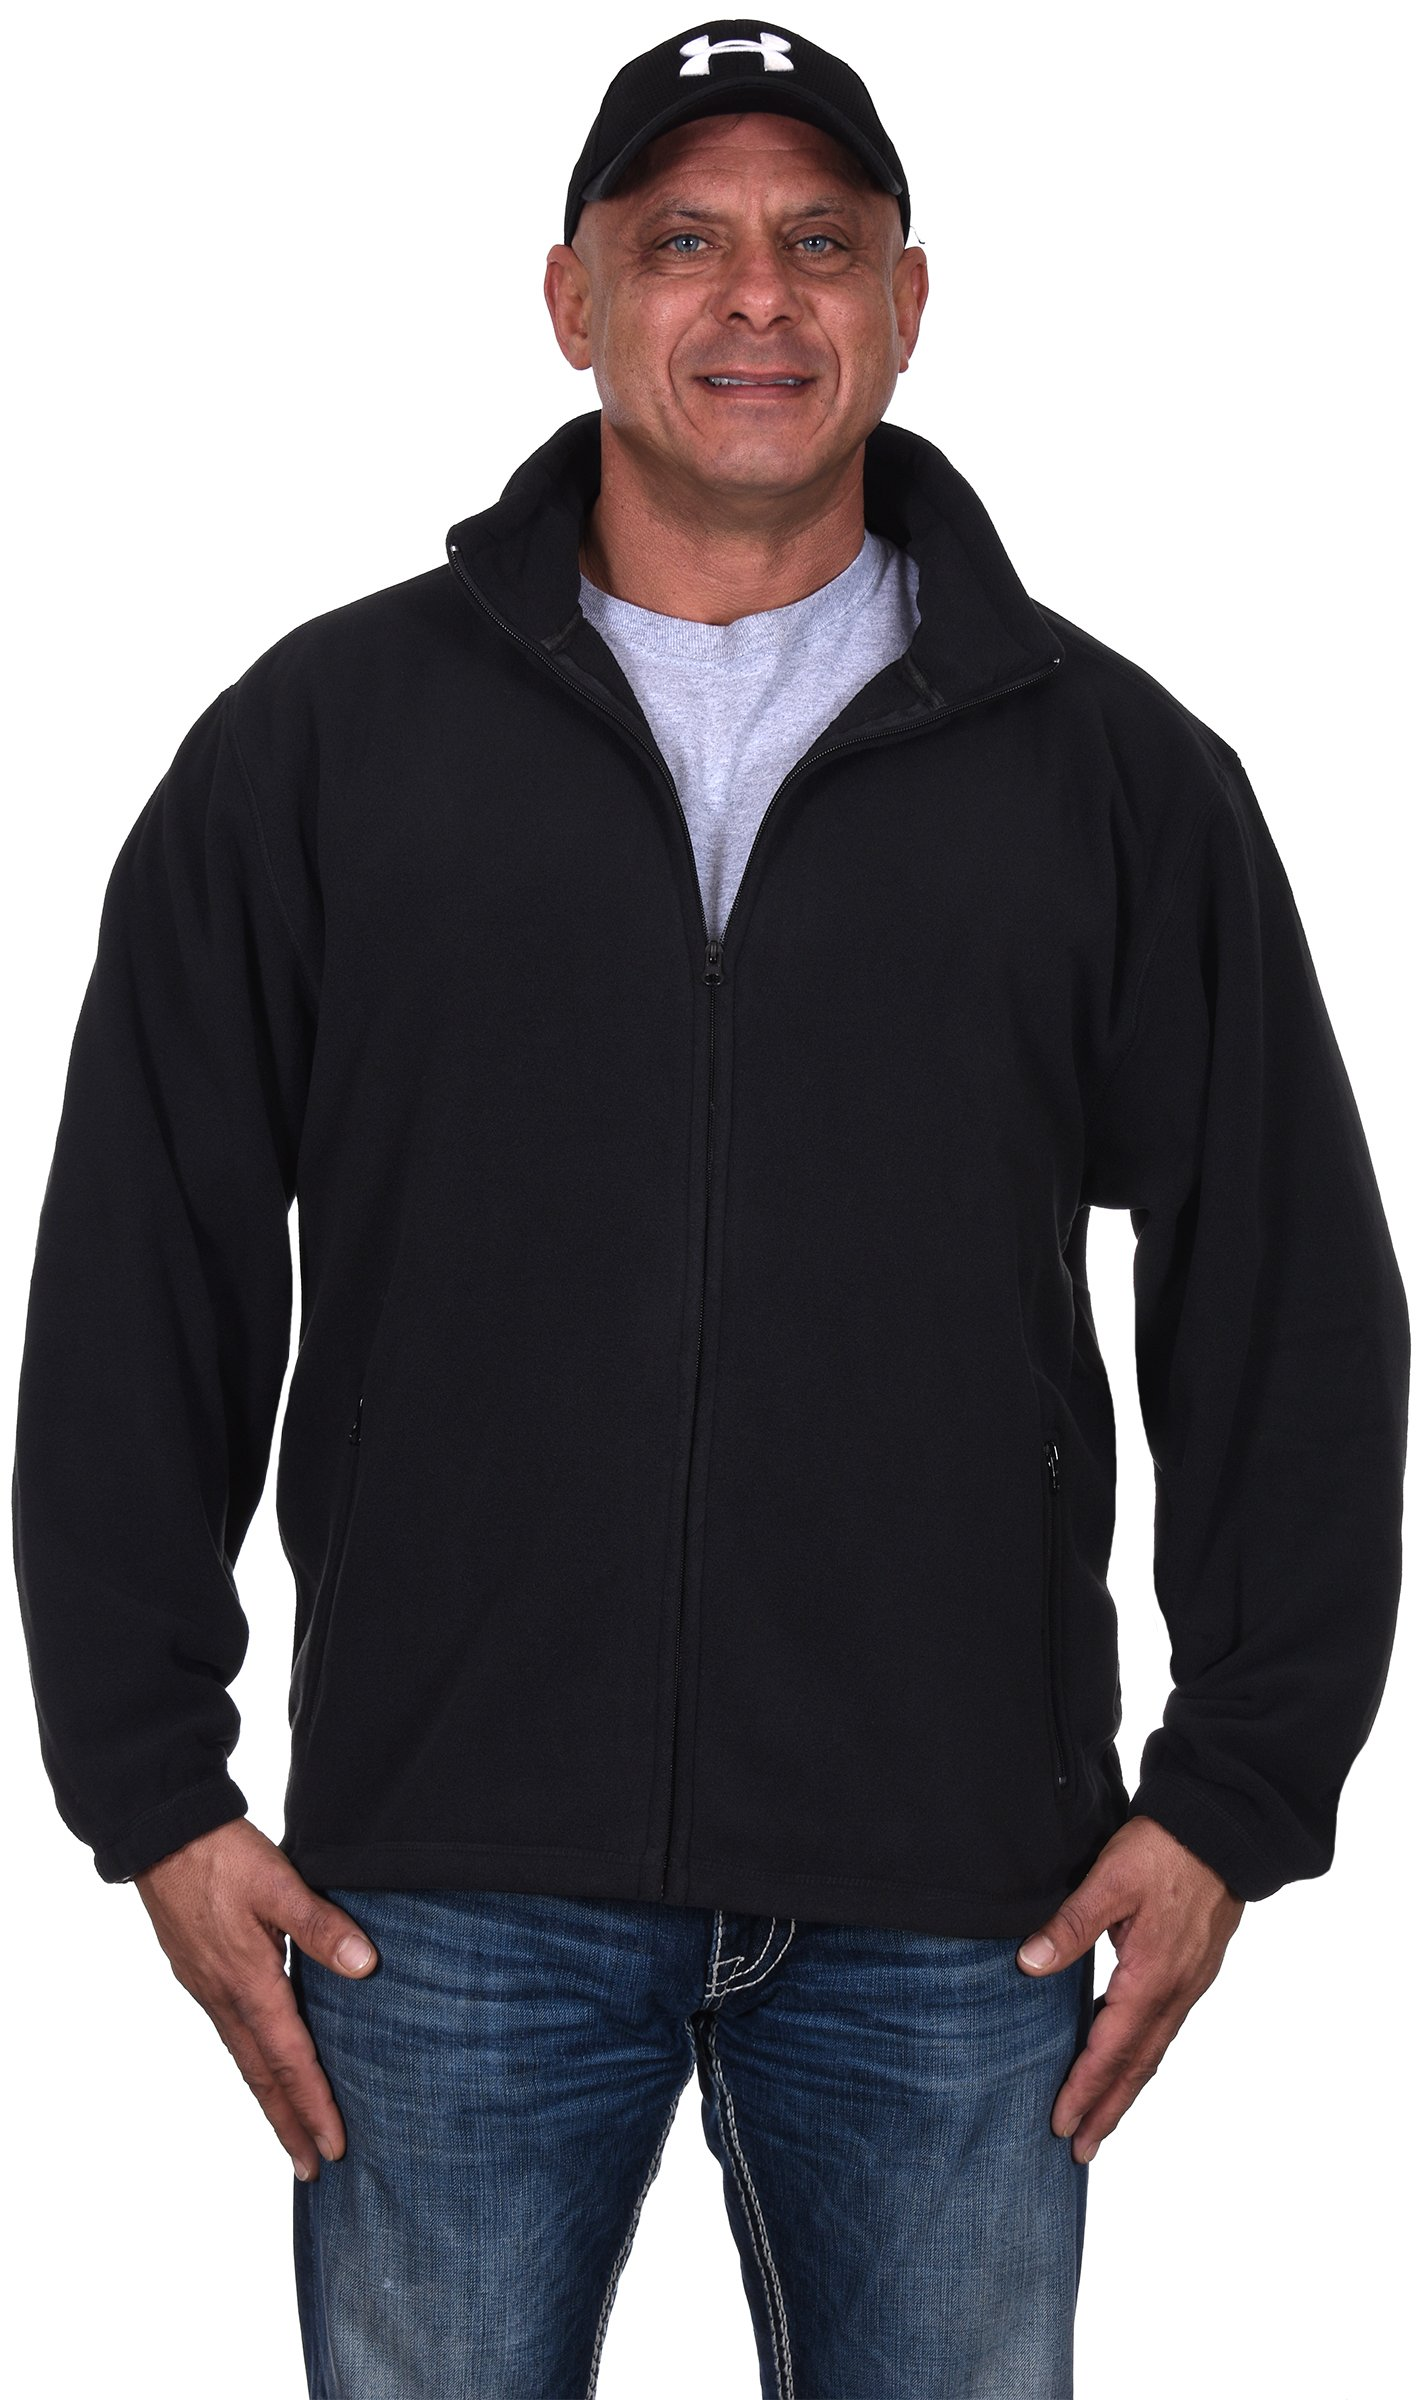 AFC Men's Full Zip Midweight Polar Fleece Jacket in Black (X-Large)